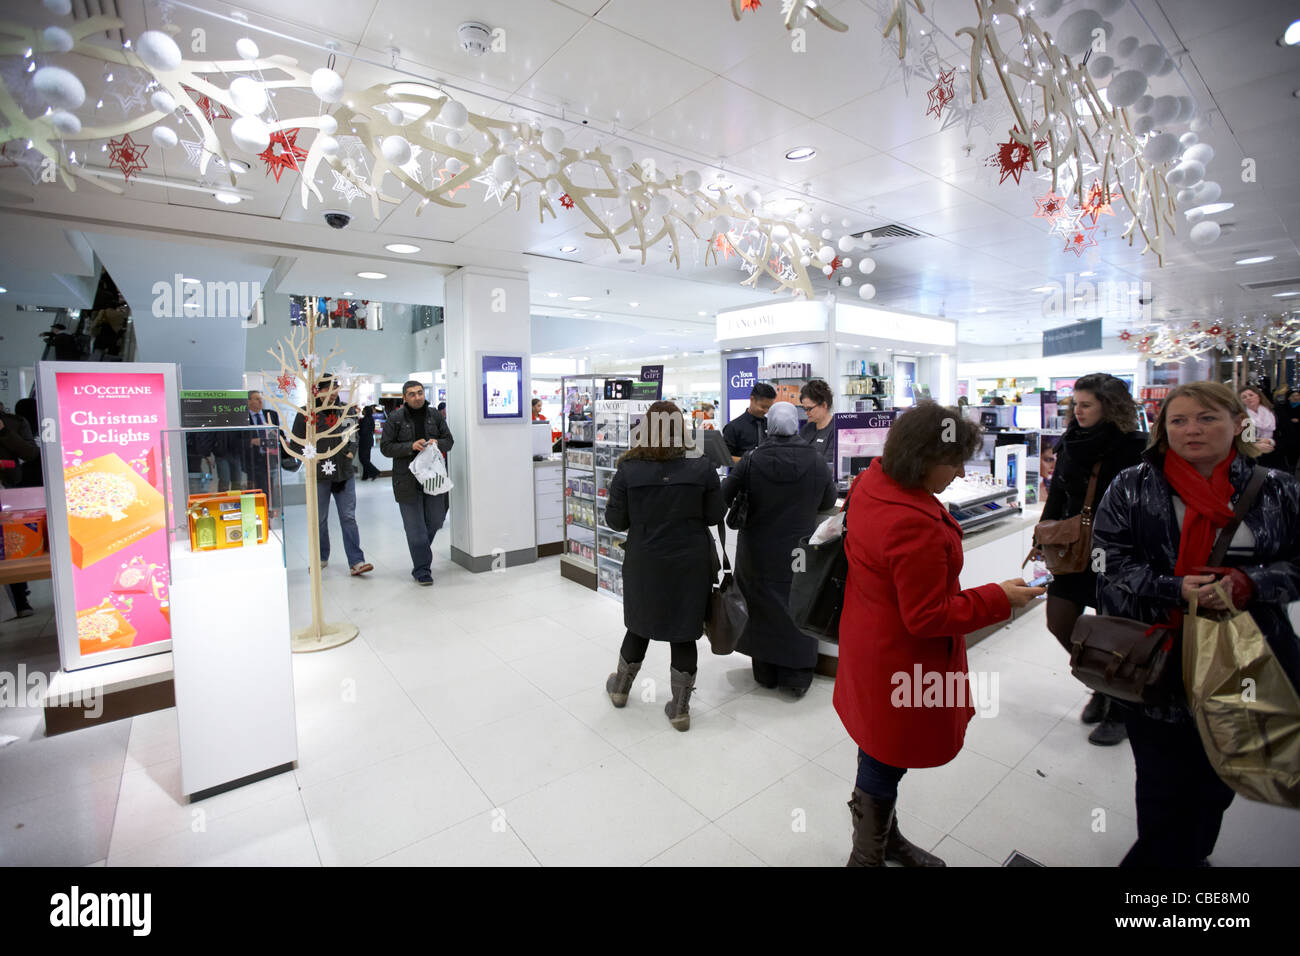 shoppers in the perfume section of john lewis department store oxford street christmas shopping london england united - Stock Image